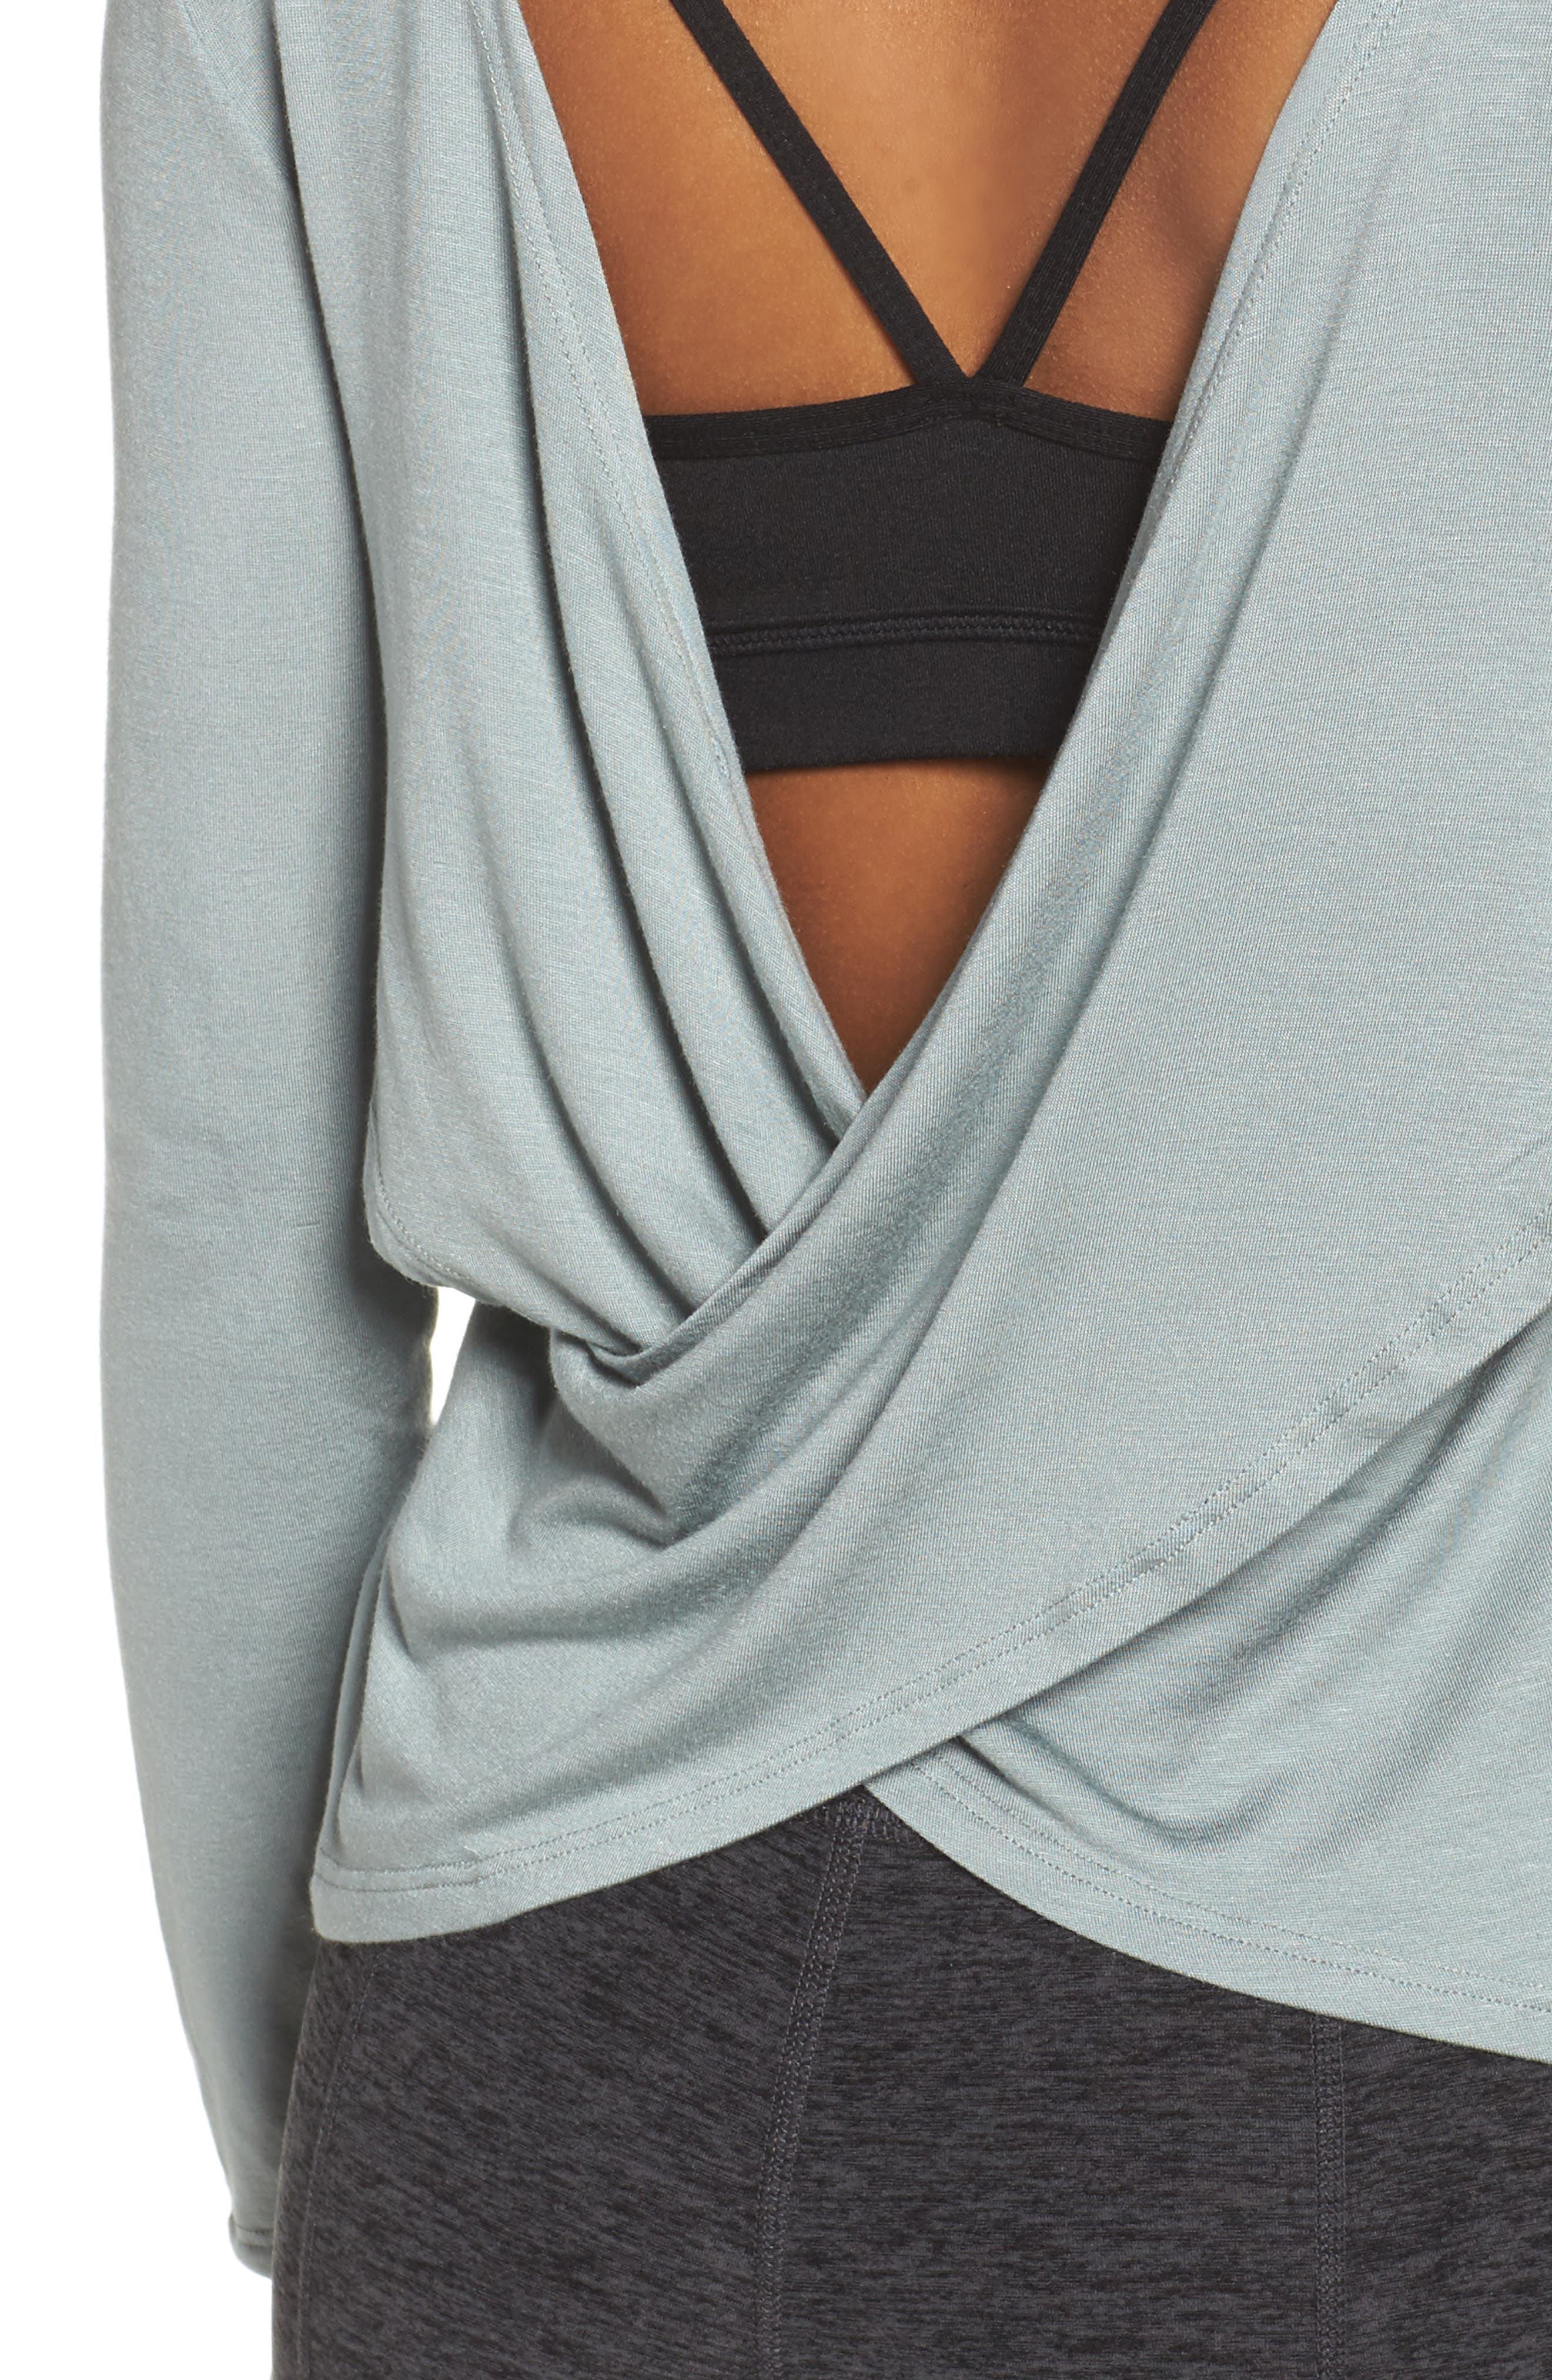 Twist of Fate Pullover,                             Alternate thumbnail 13, color,